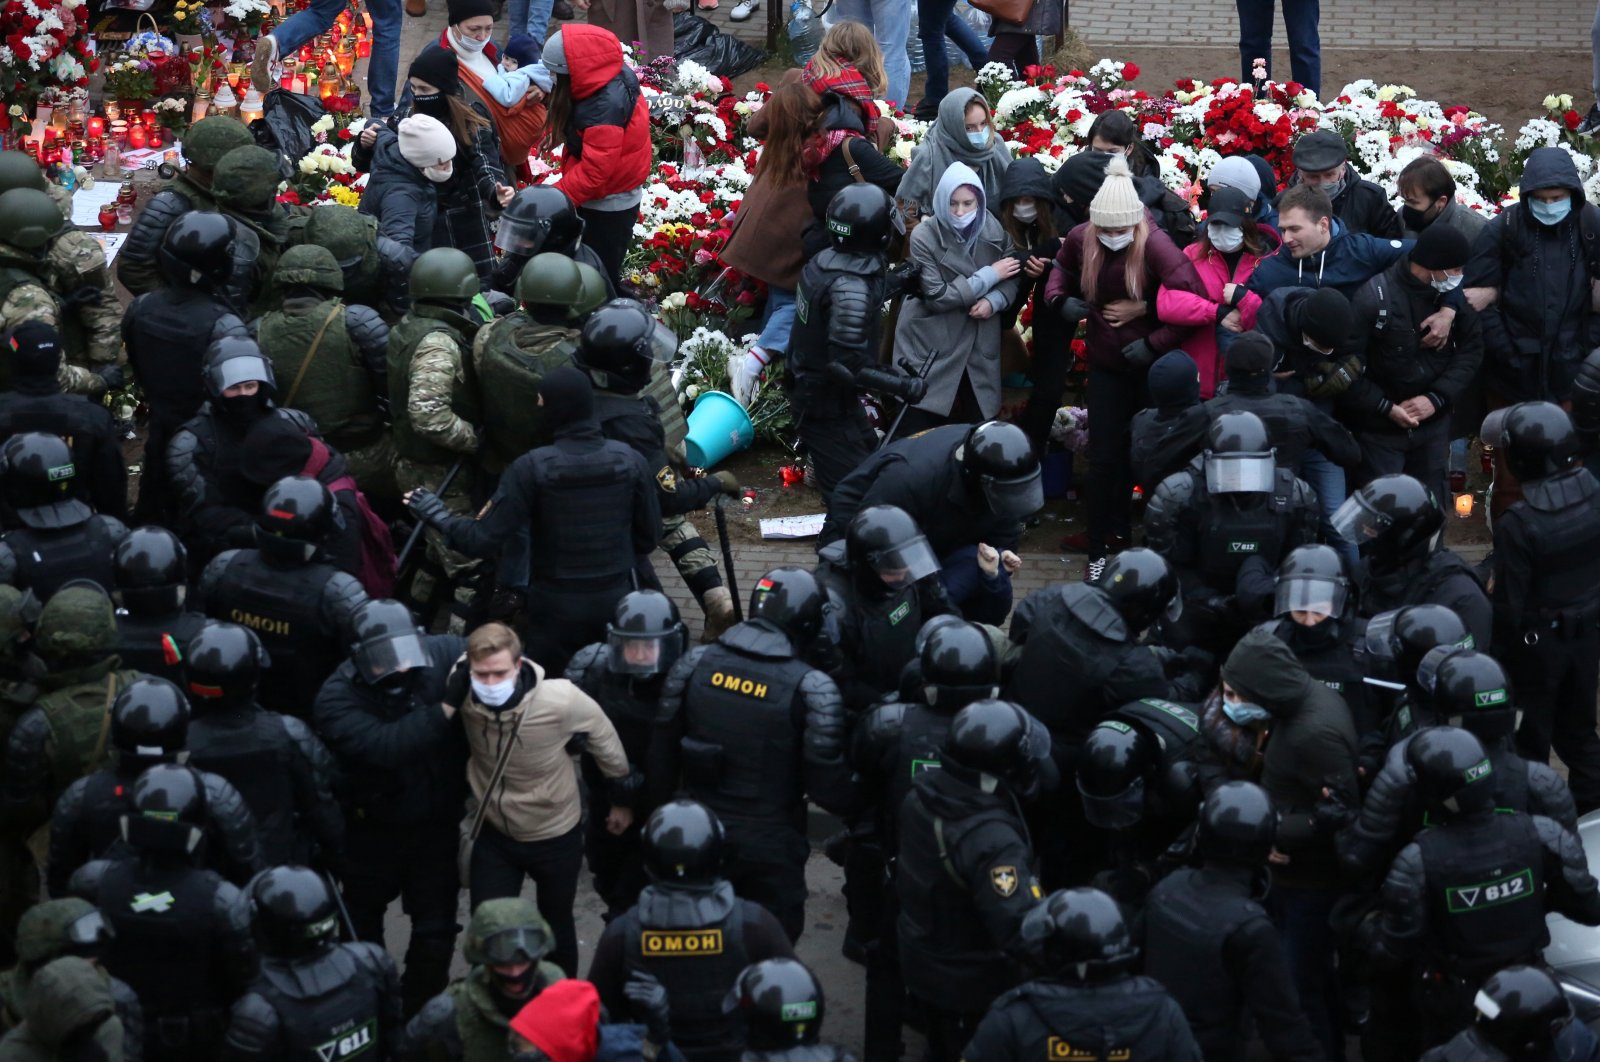 Belarusian law enforcement officers surround demonstrators during a rally to reject the presidential election results in Minsk, Belarus, Nov. 15, 2020. REUTERS/Stringer